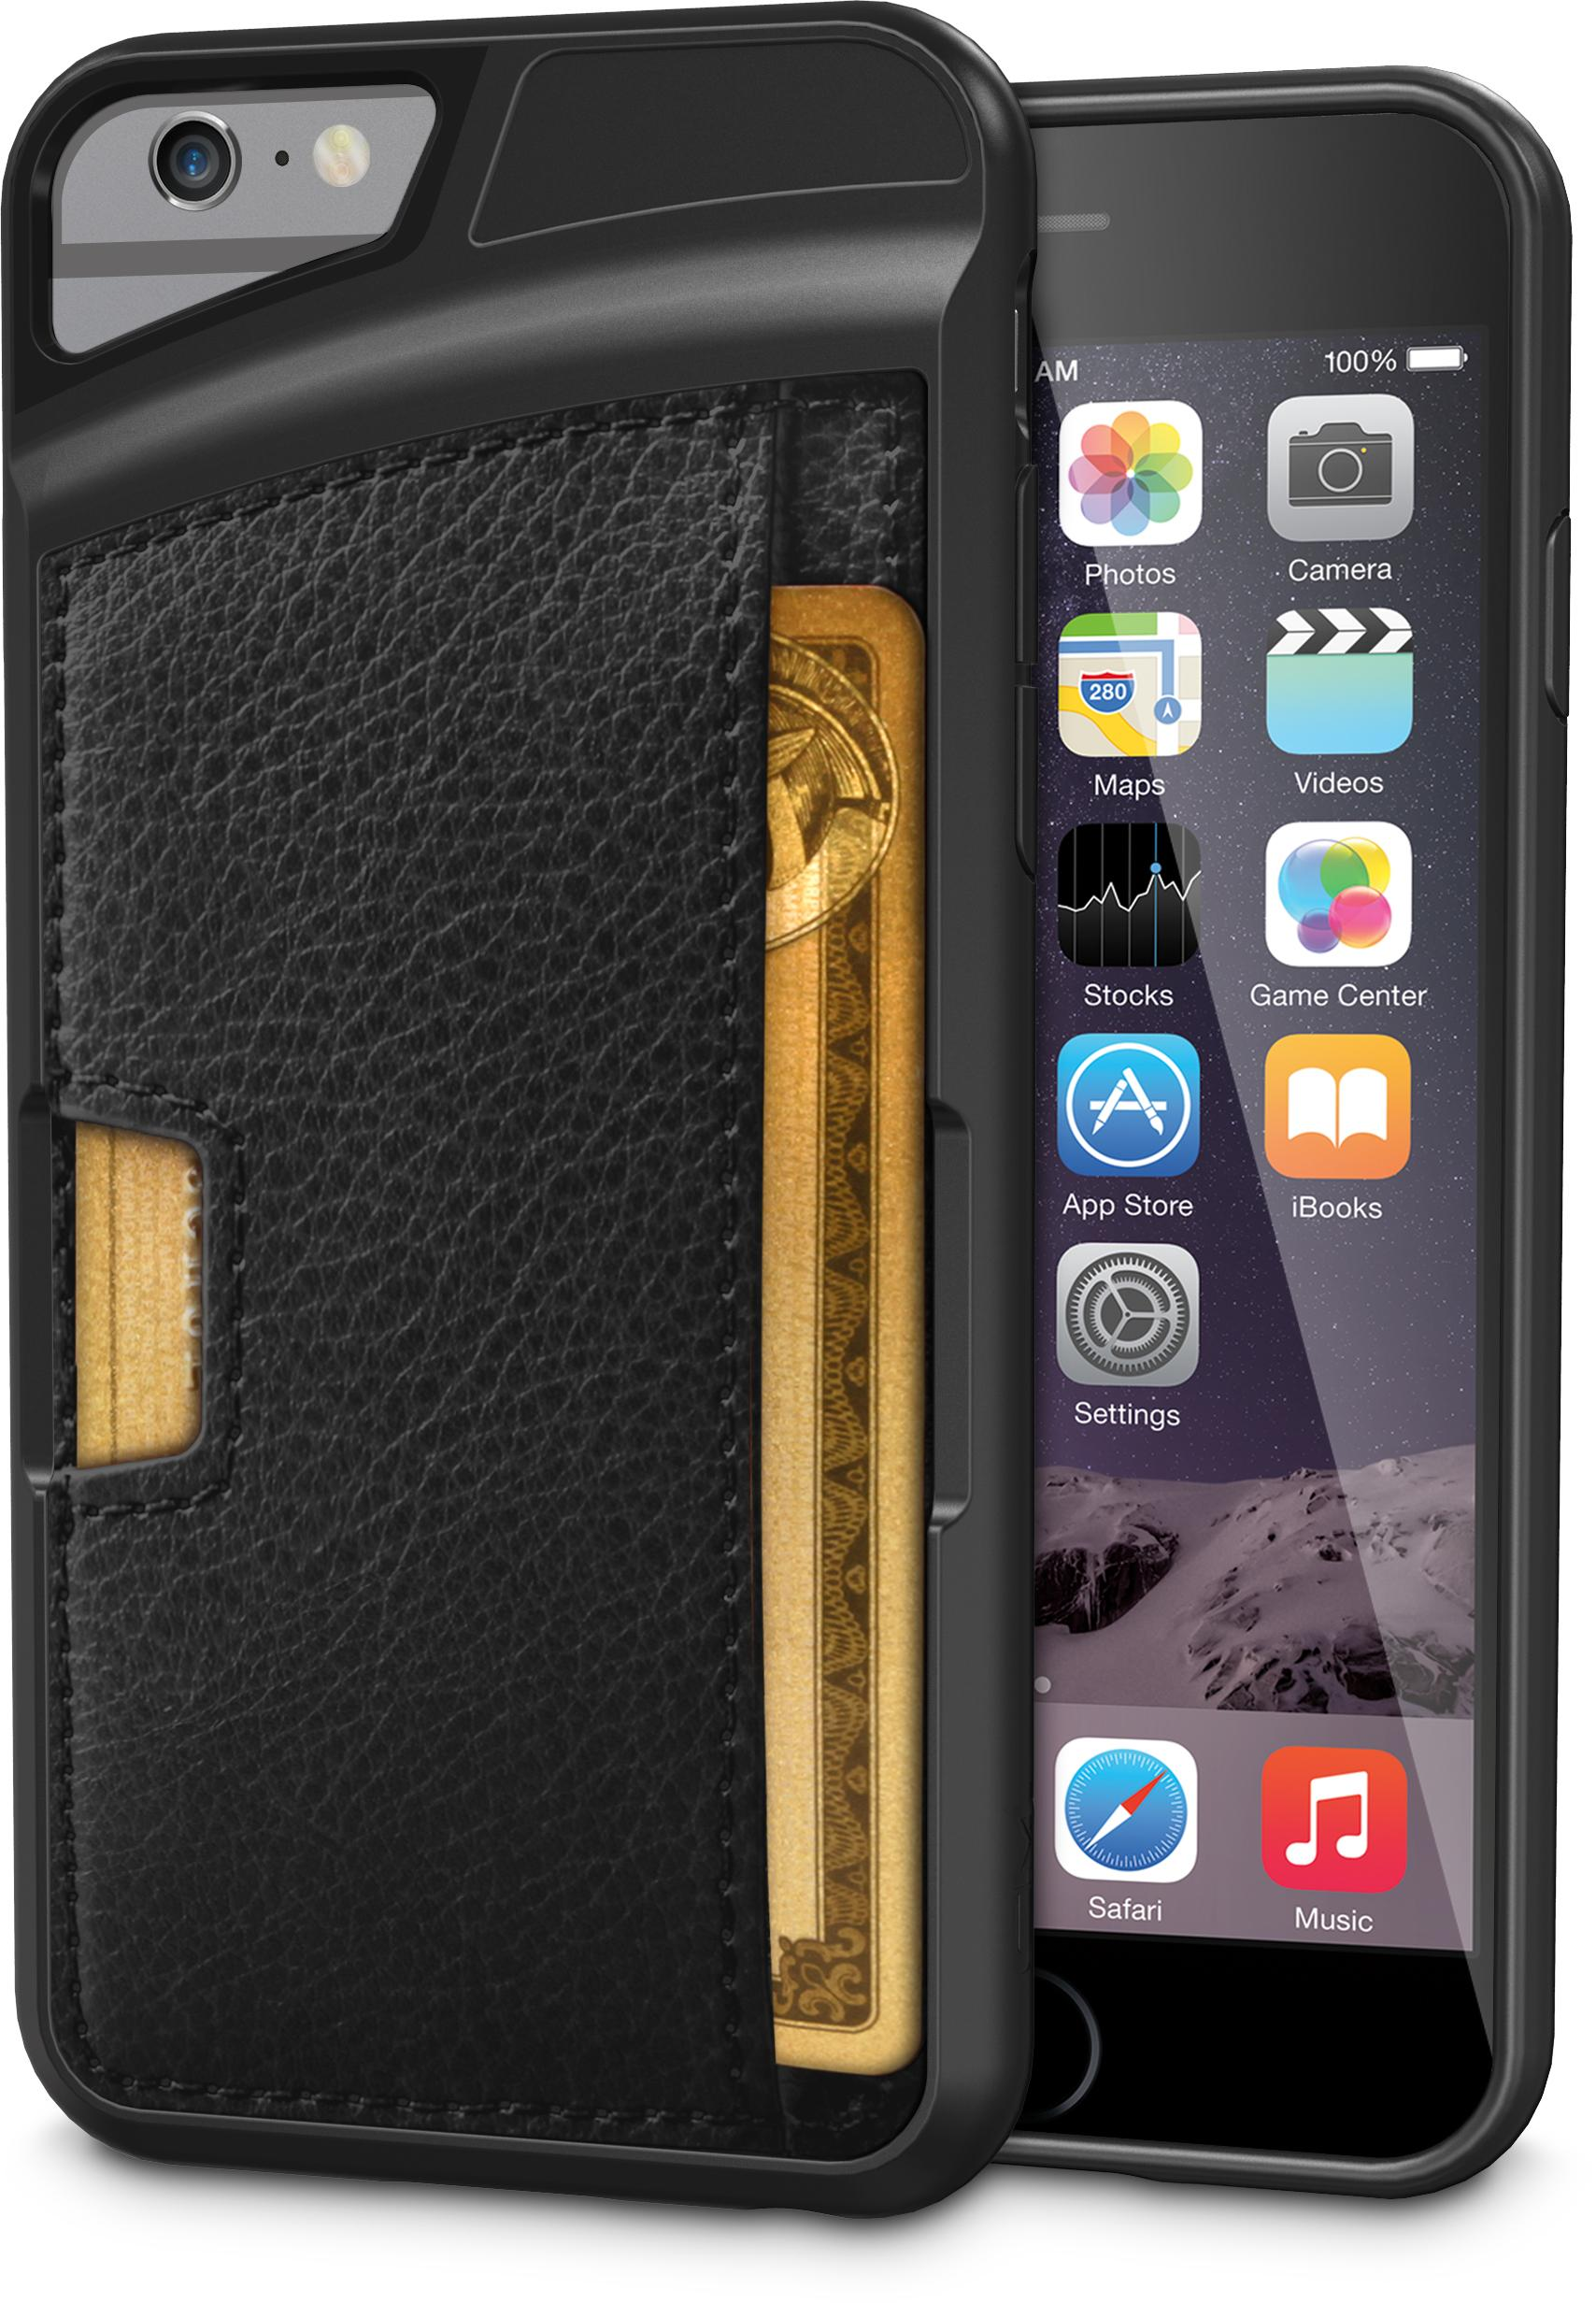 Amazon.com: iPhone 6 Wallet Case - Q Card Case for iPhone